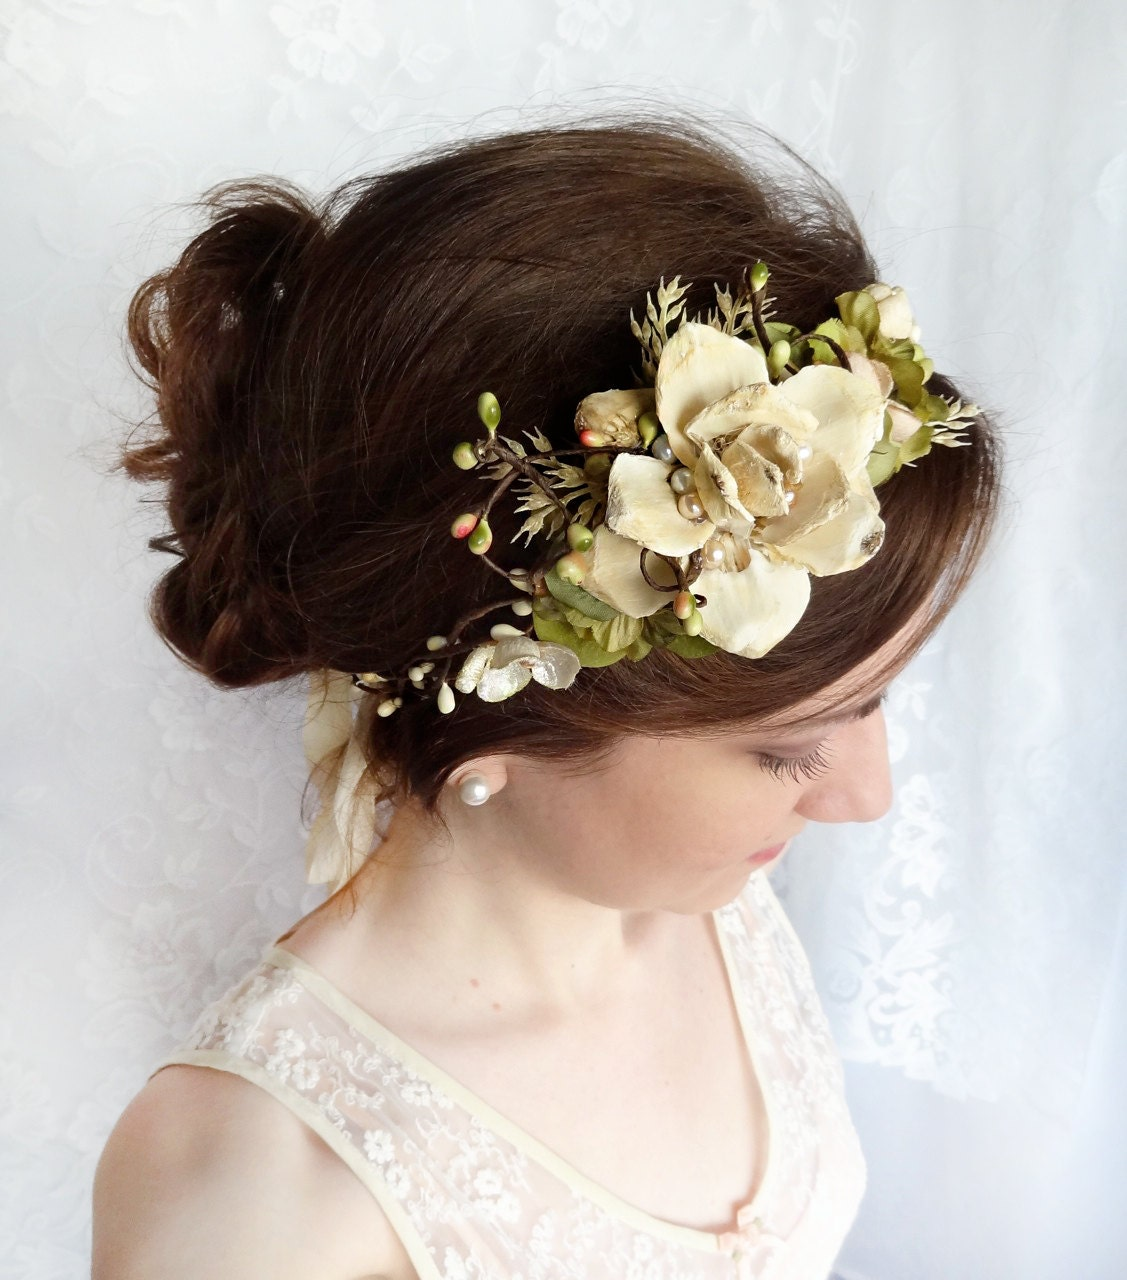 Flower Wedding Headpieces: Woodland Wedding Headpiece Cream Flower Champagne Wedding